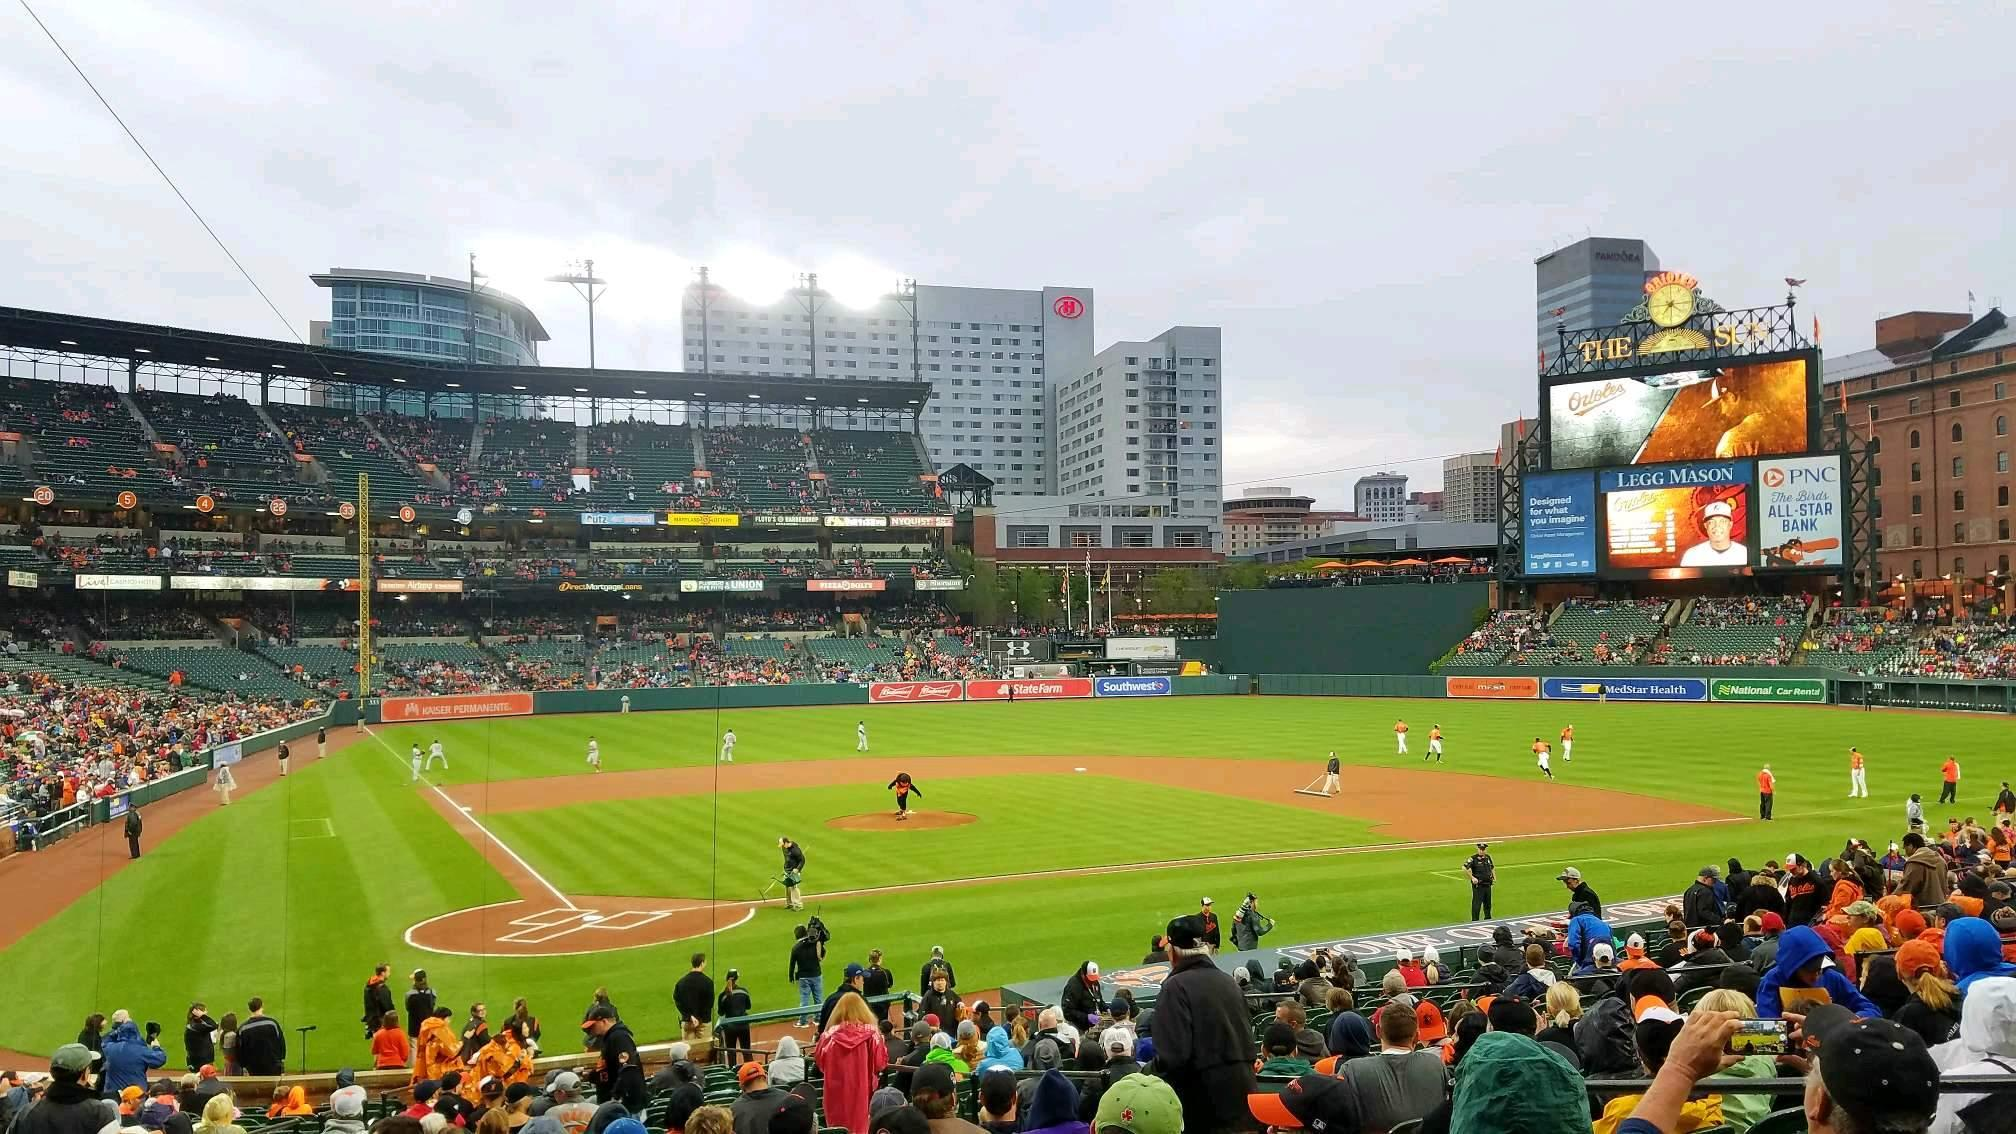 Oriole Park at Camden Yards Section 30 Row 28 Seat 6